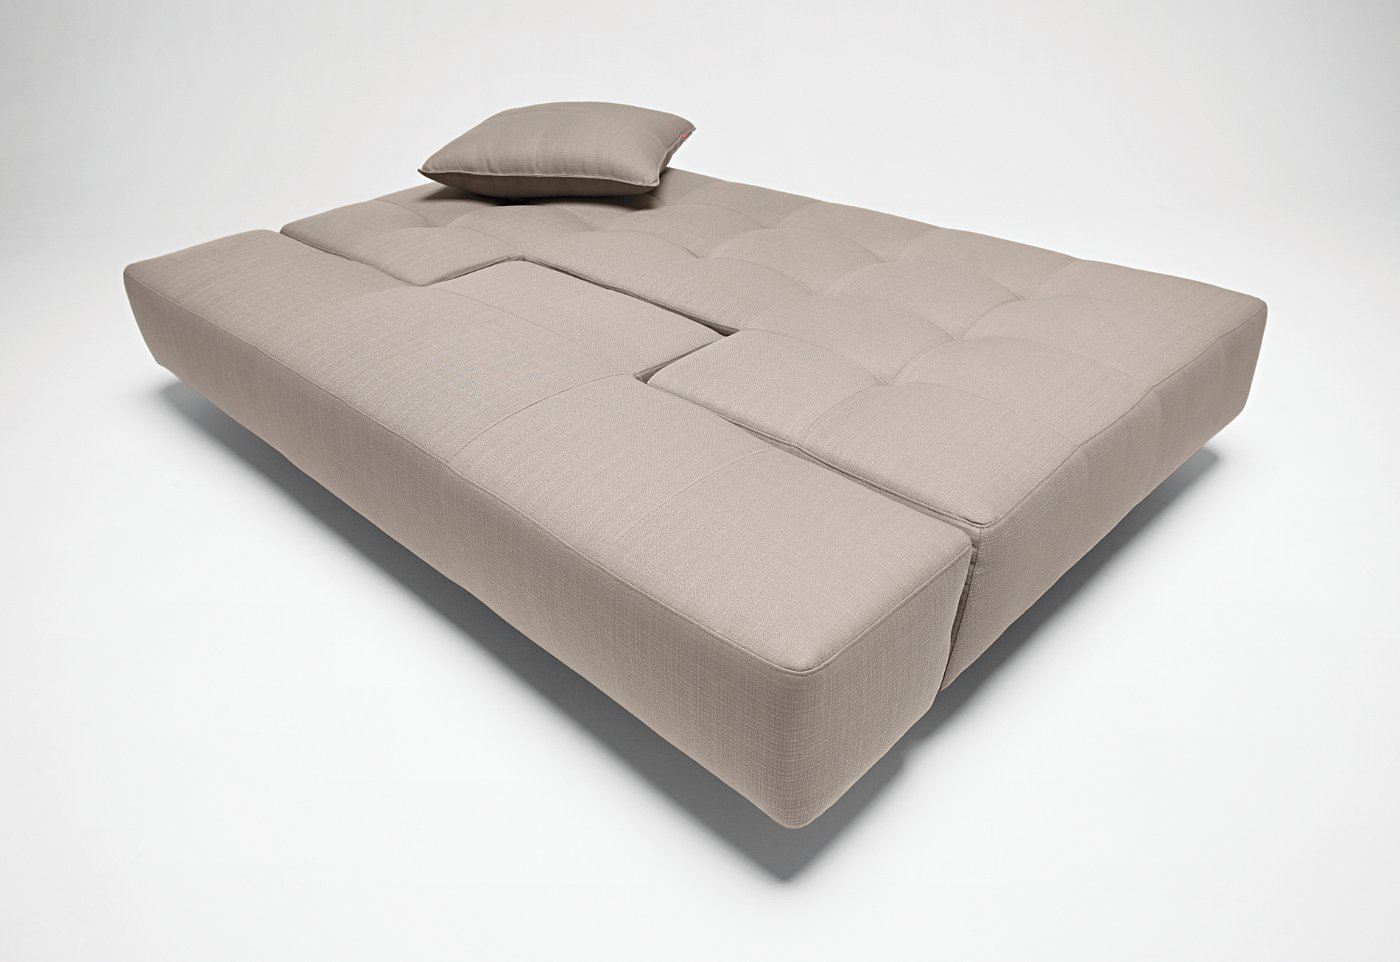 Sofa Mattress Sofa Beds With Thick Mattress Multifunction Thick Folding